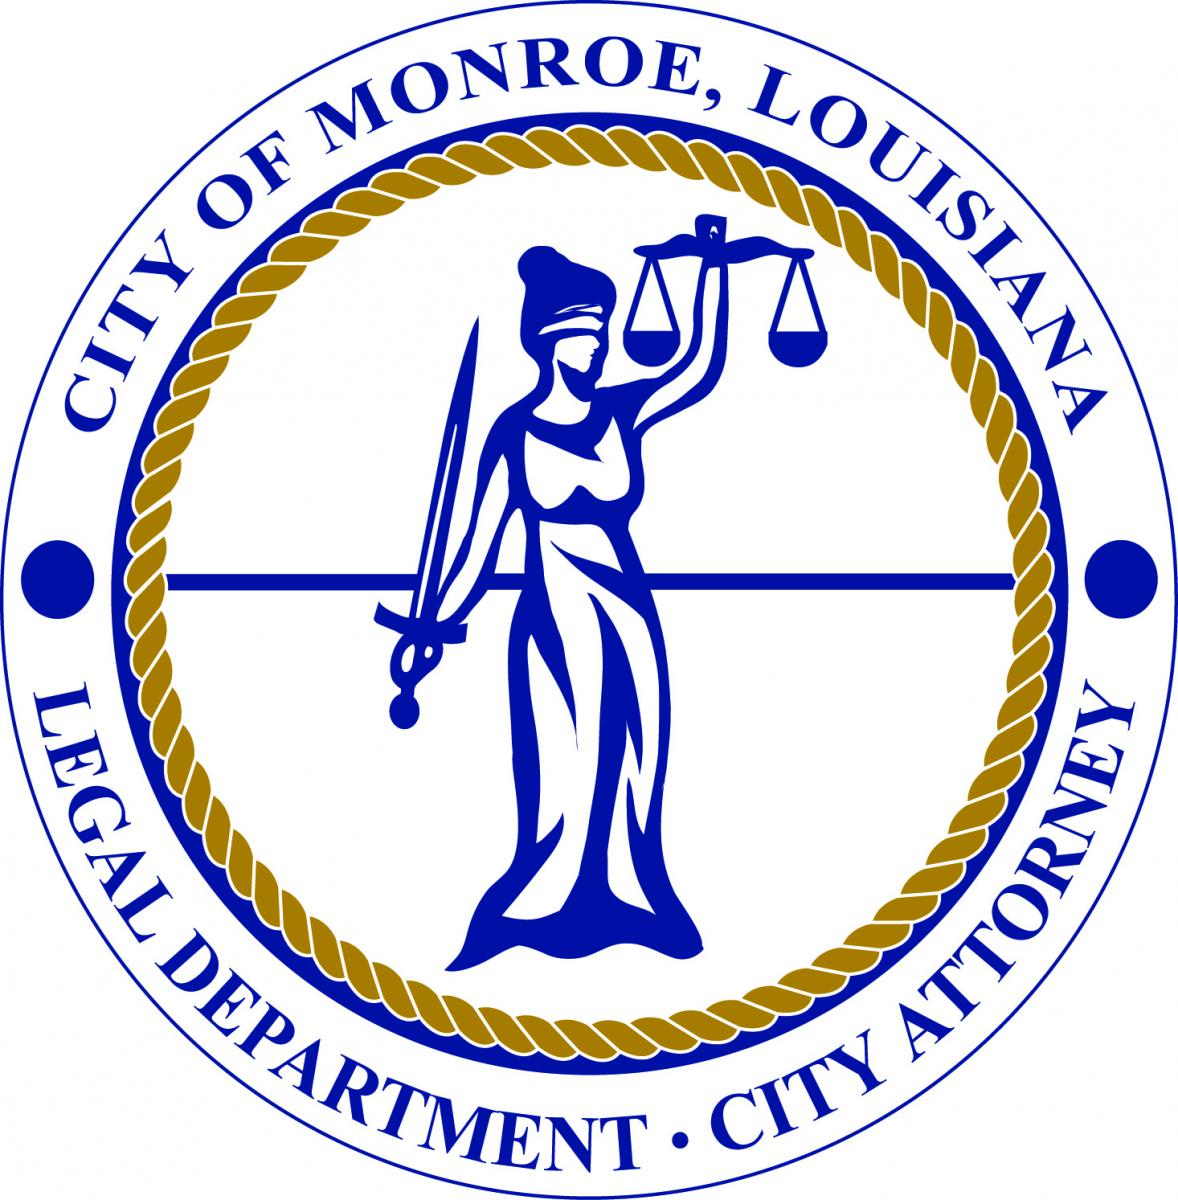 Legal Department City of monroe